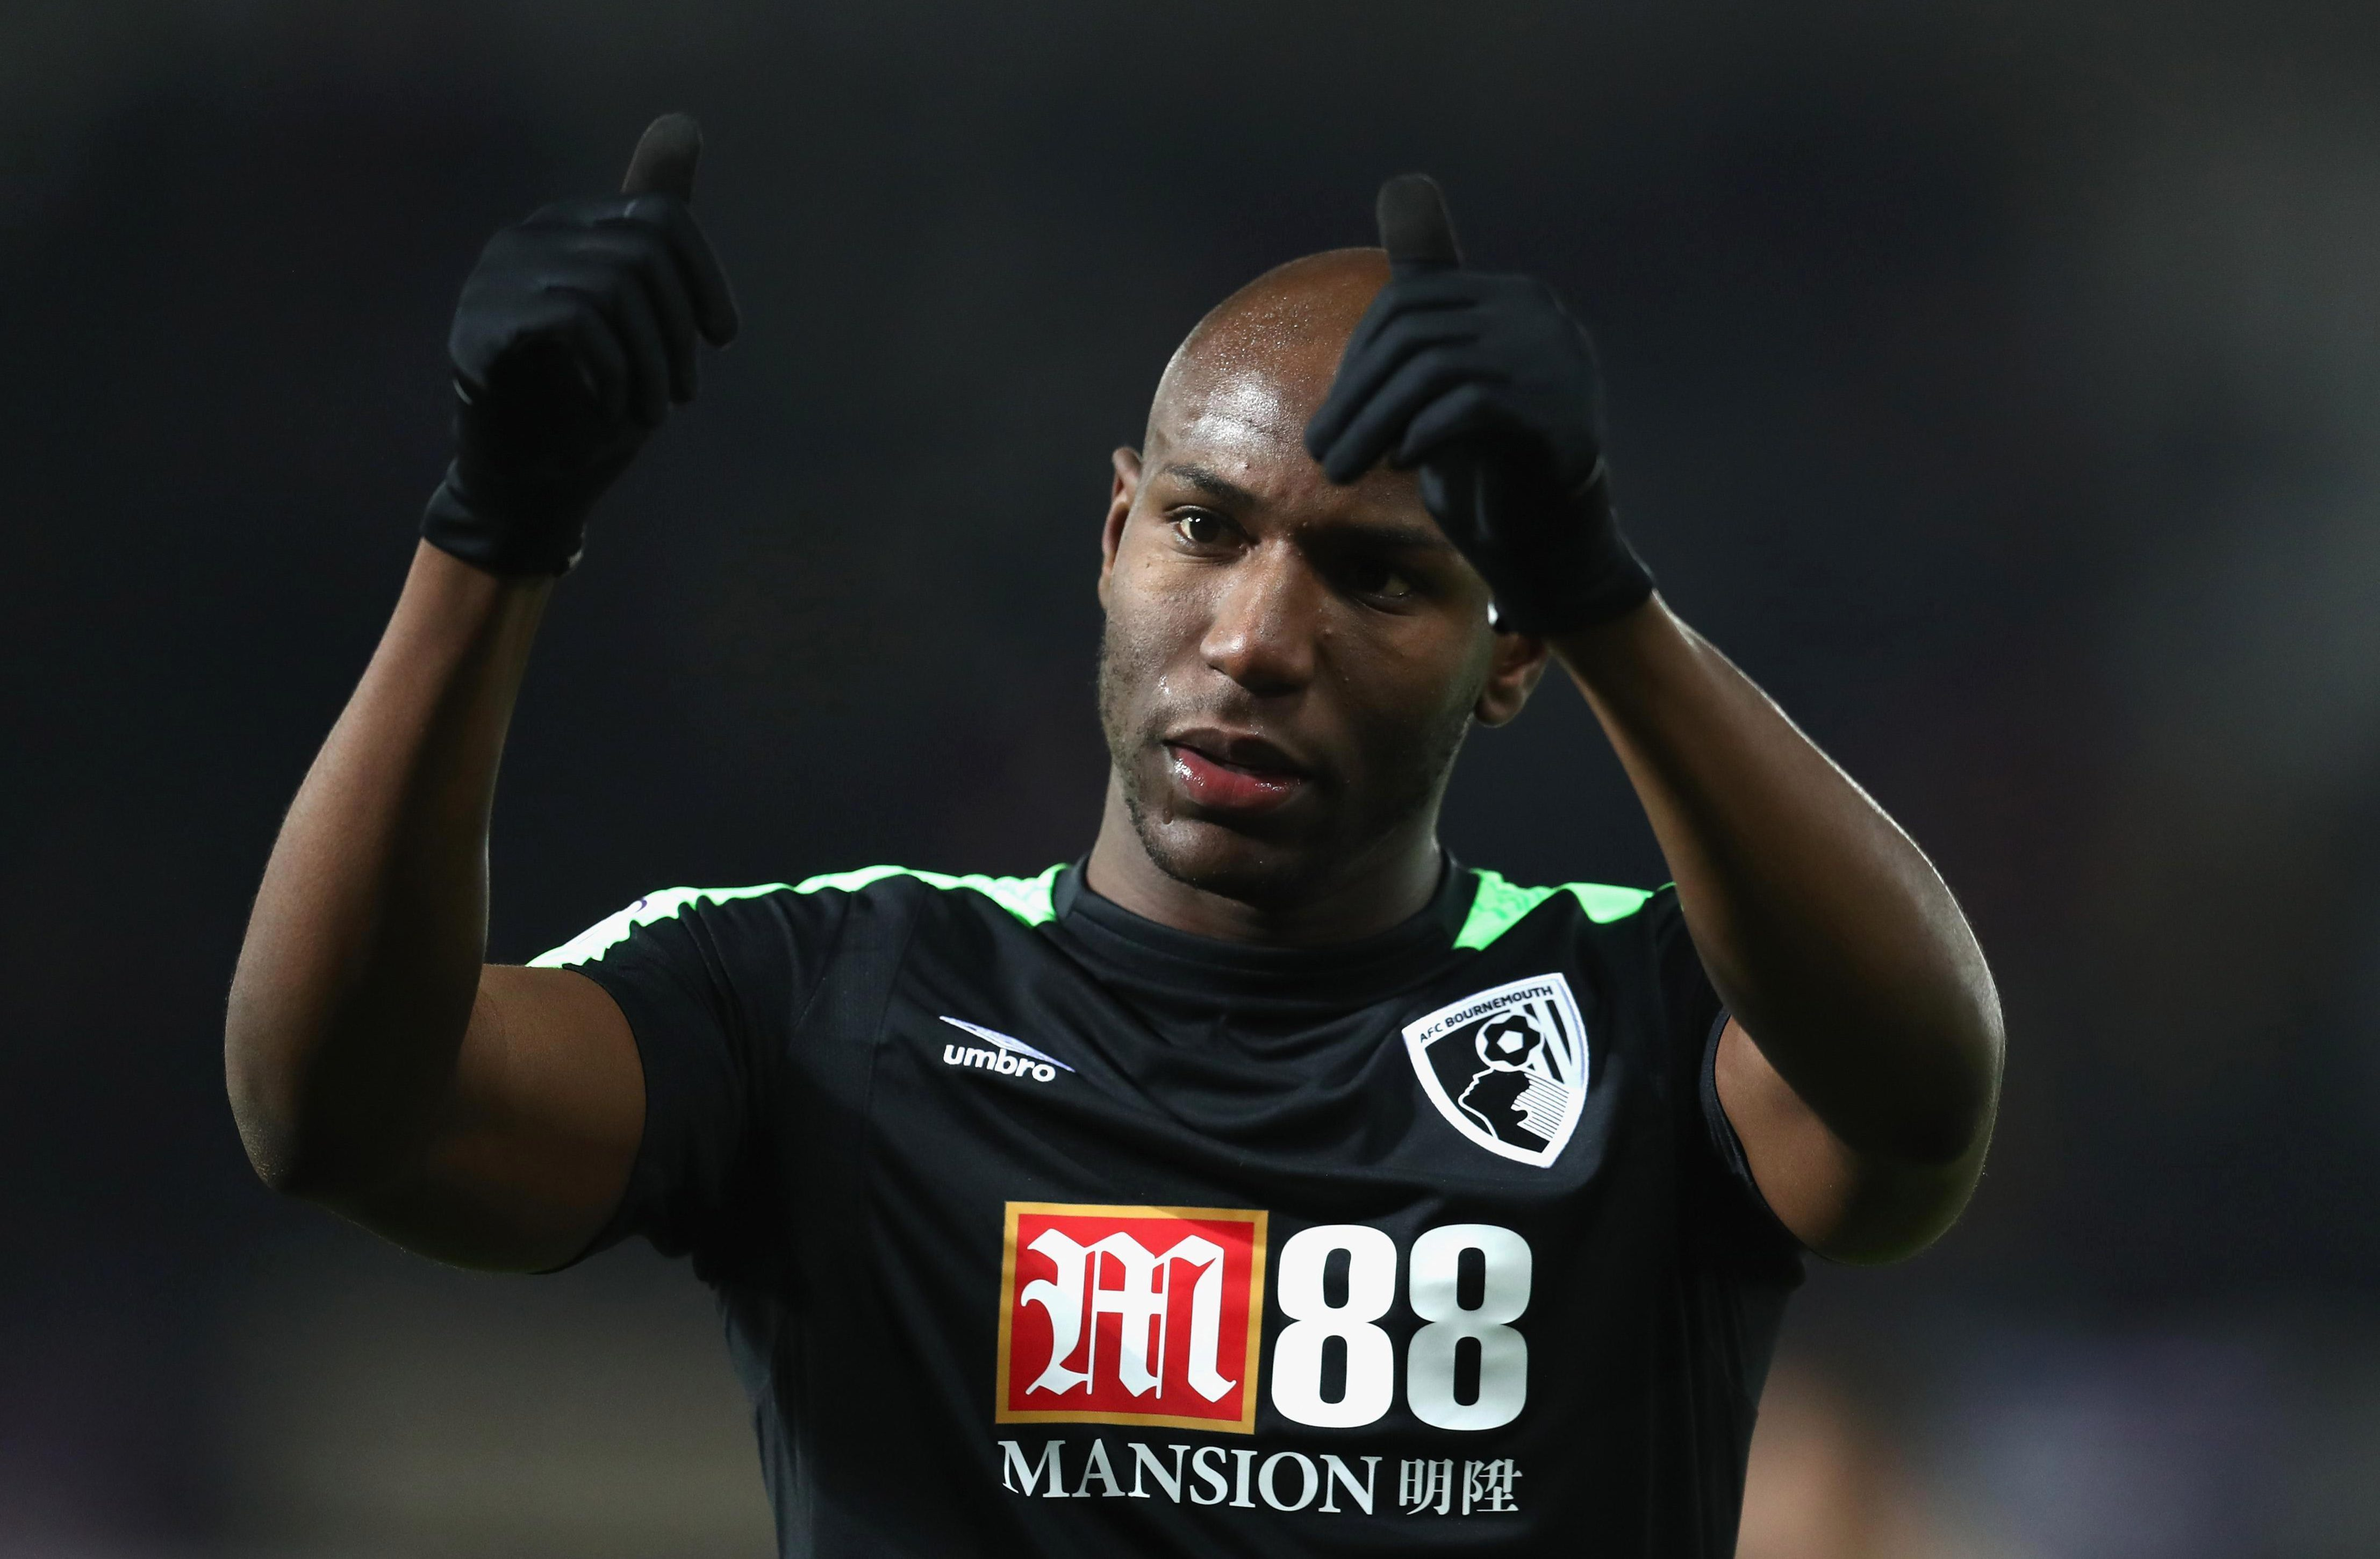 Bournemouth ace Benik Afobe rejoins Wolves on loan with view to a permanent deal this summer